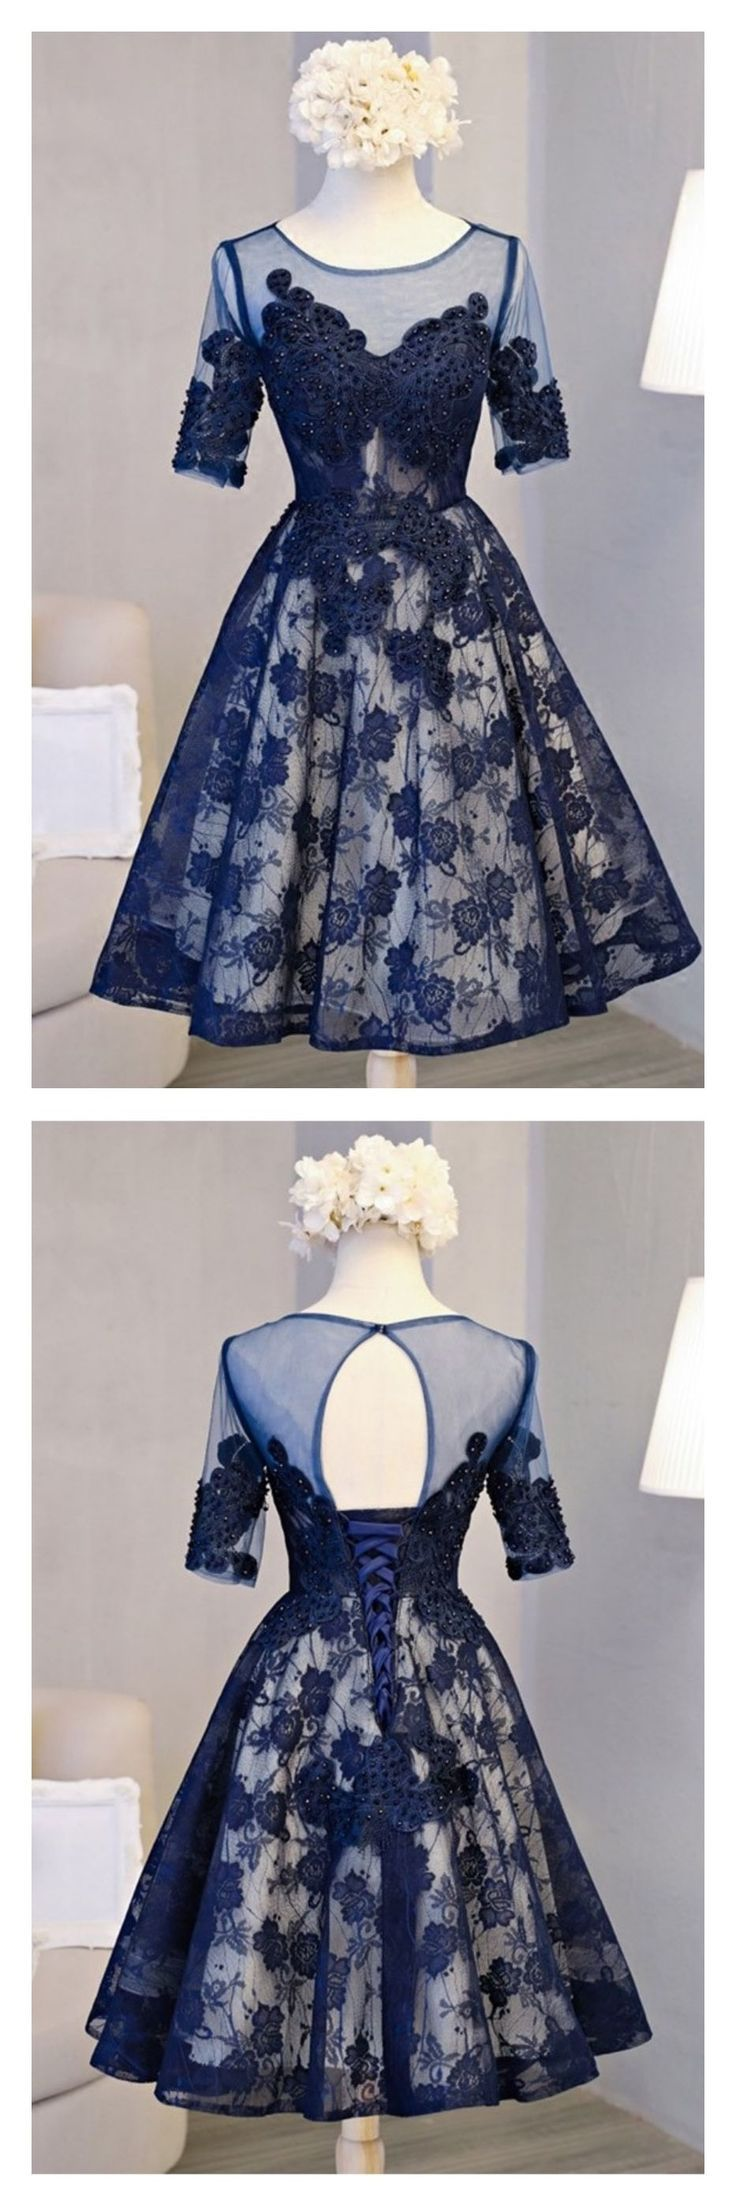 Off the shoulder homecoming dress blue cheap homecoming dress